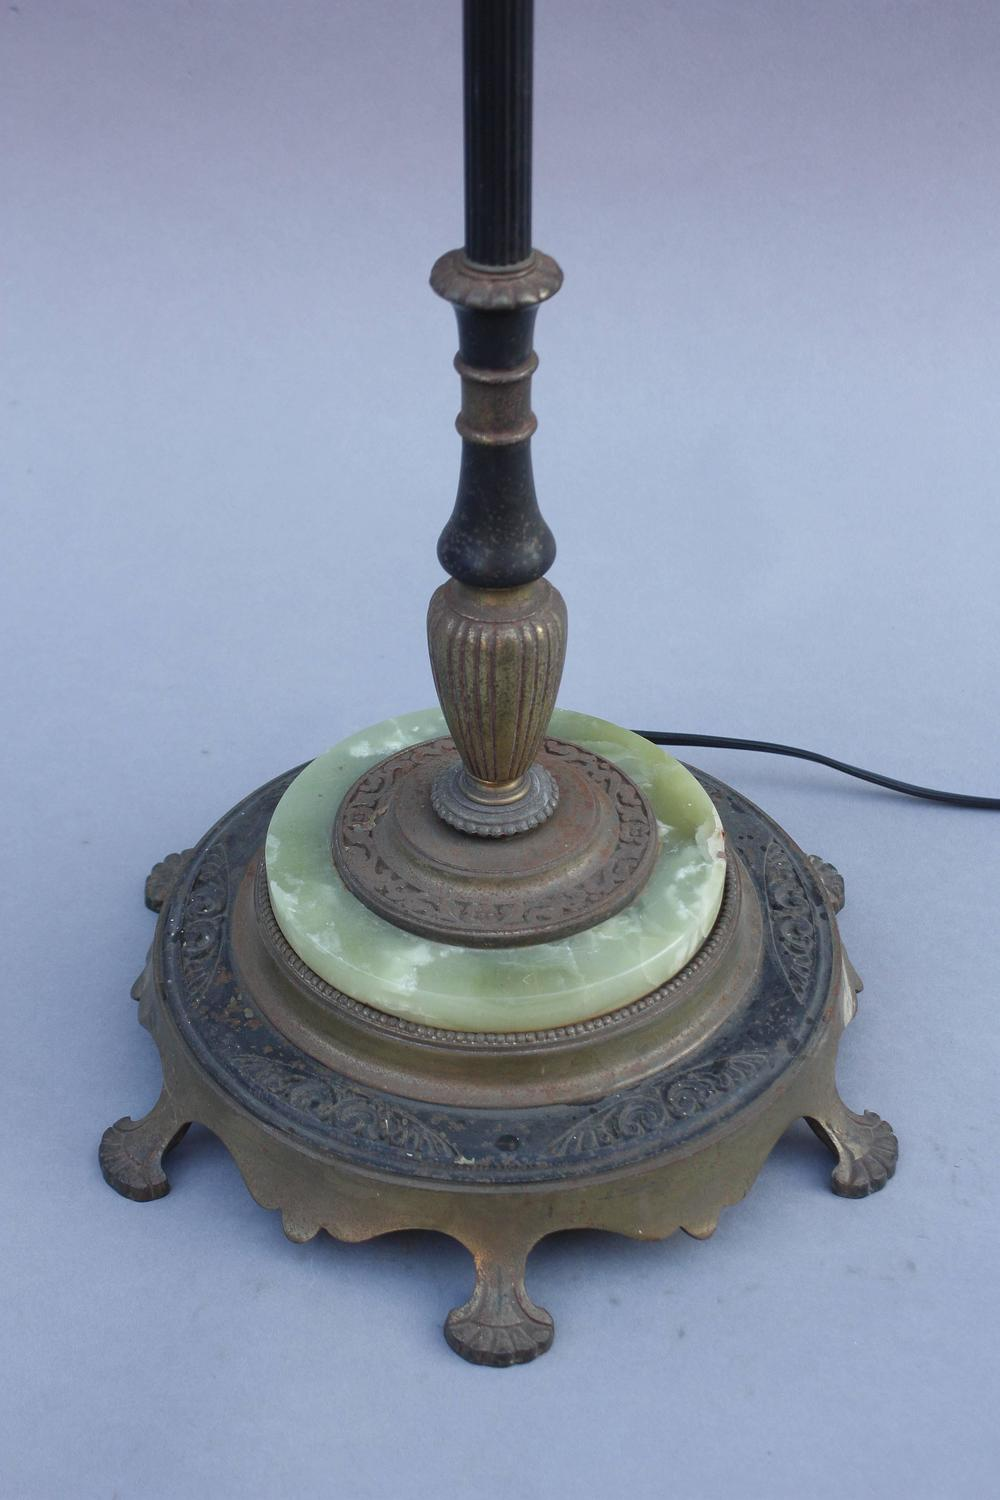 1920s floor lamp with original mica shade for sale at 1stdibs for 1920 s wood floor lamp